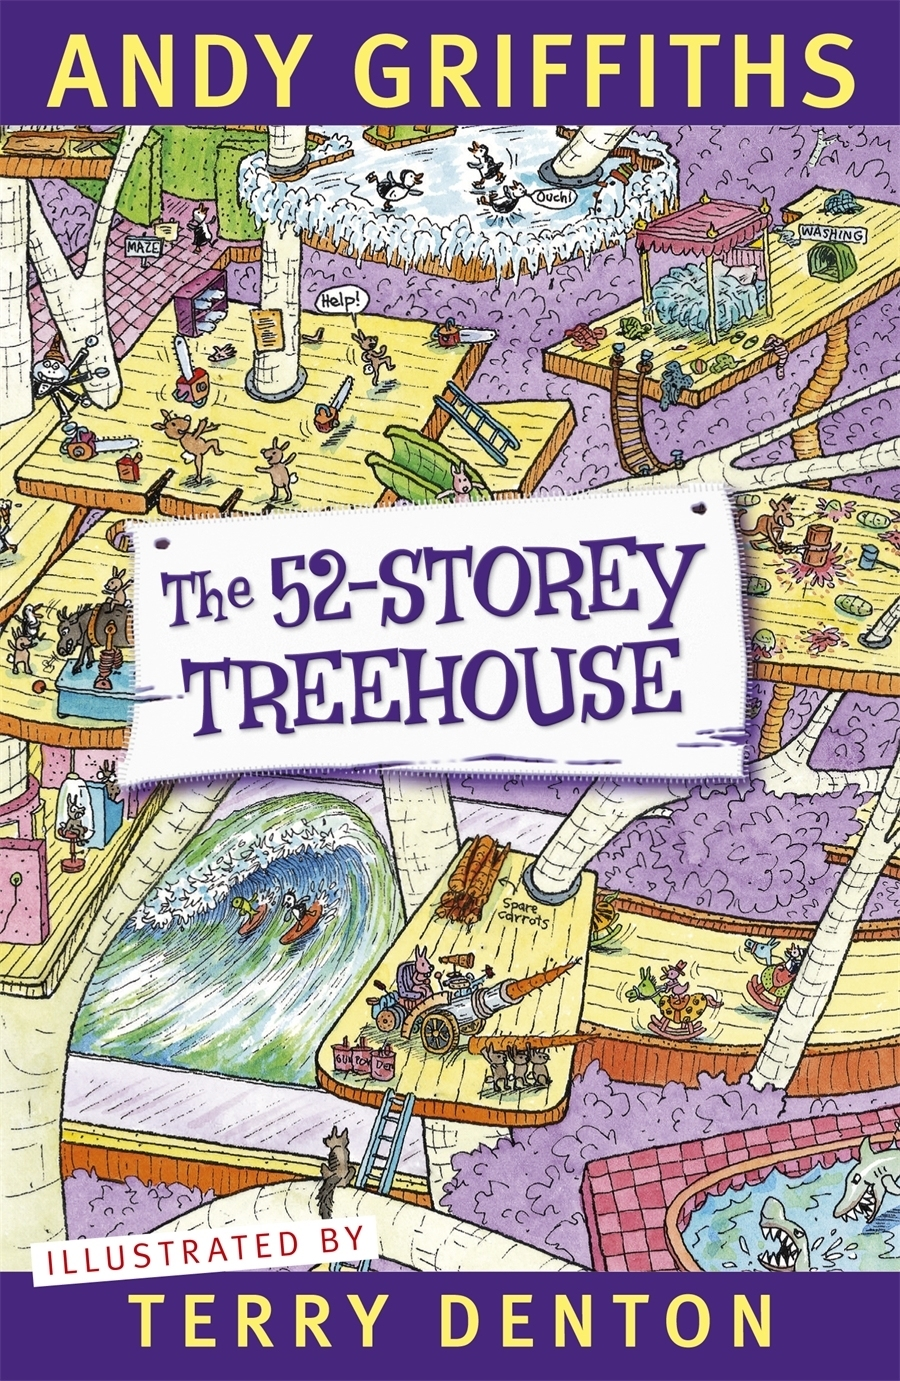 Andy Griffiths Treehouse Part - 21: The 52-Storey Treehouse By Andy Griffiths Image